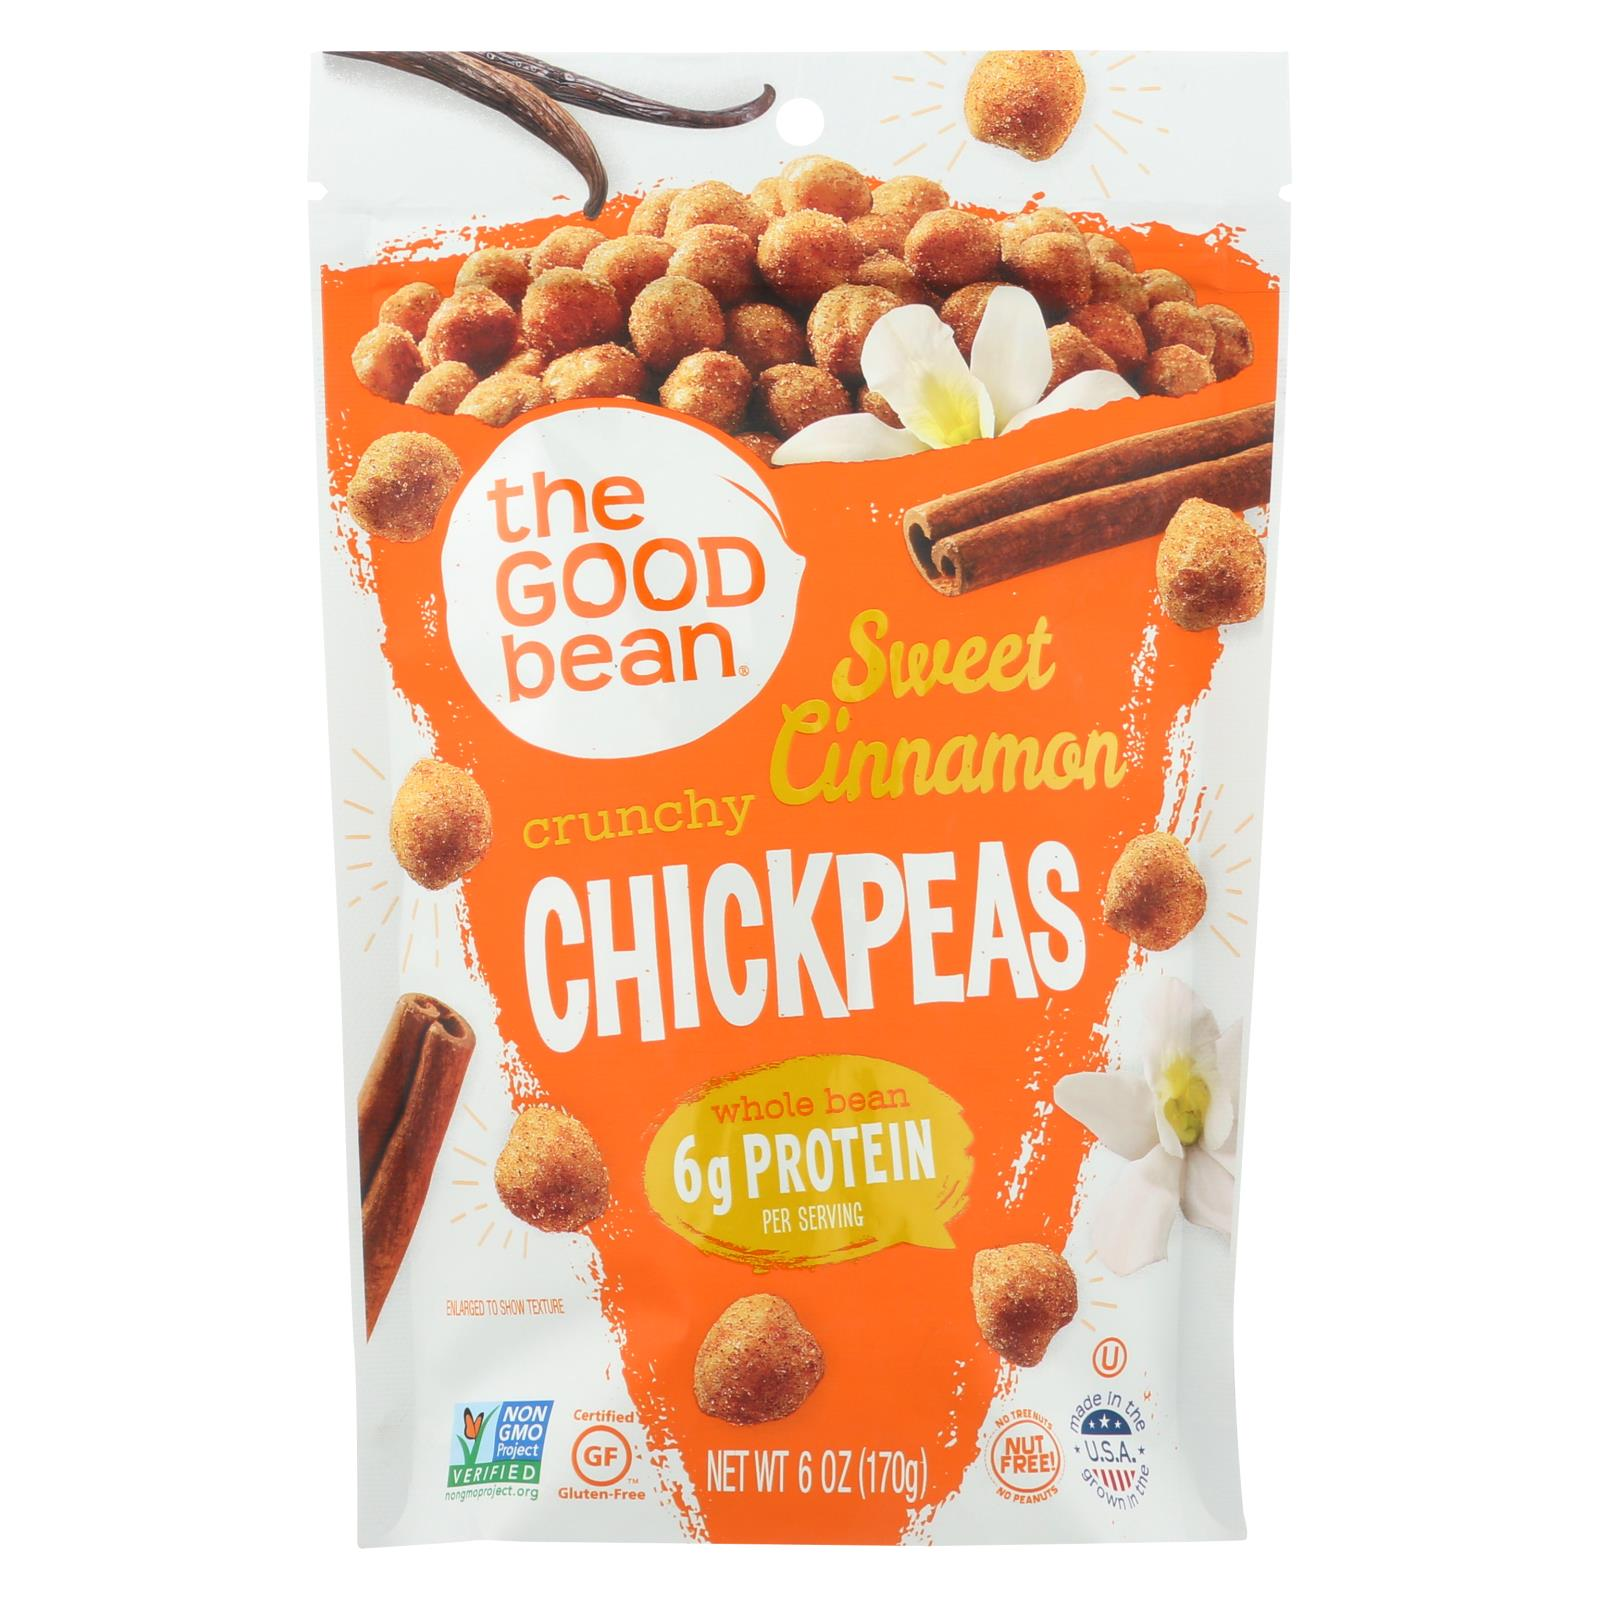 The Good Bean - Sweet Cinnamon Crunchy Chickpeas